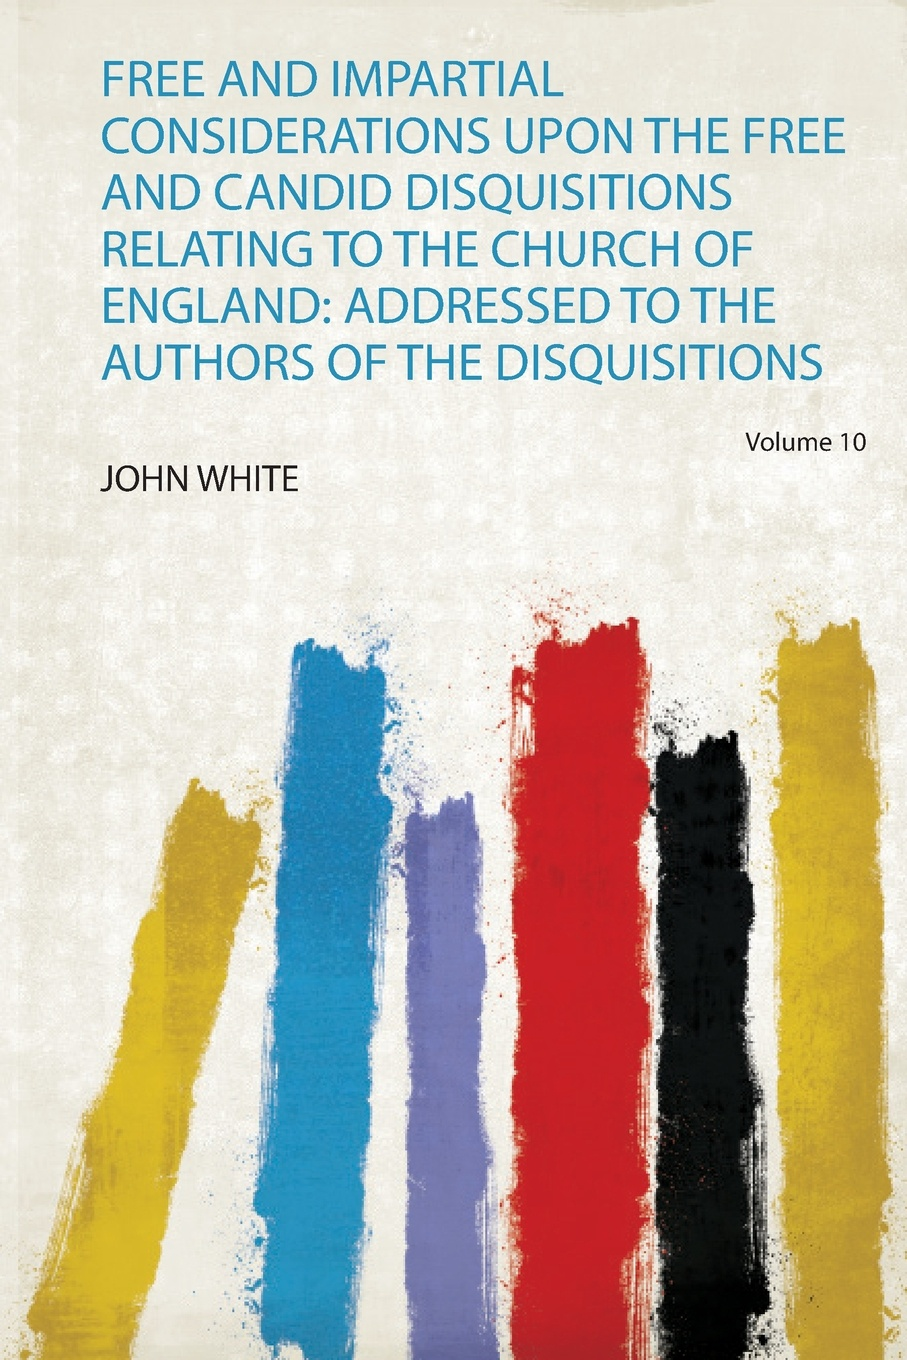 Free and Impartial Considerations Upon the Free and Candid Disquisitions Relating to the Church of England. Addressed to the Authors of the Disquisitions цена в Москве и Питере